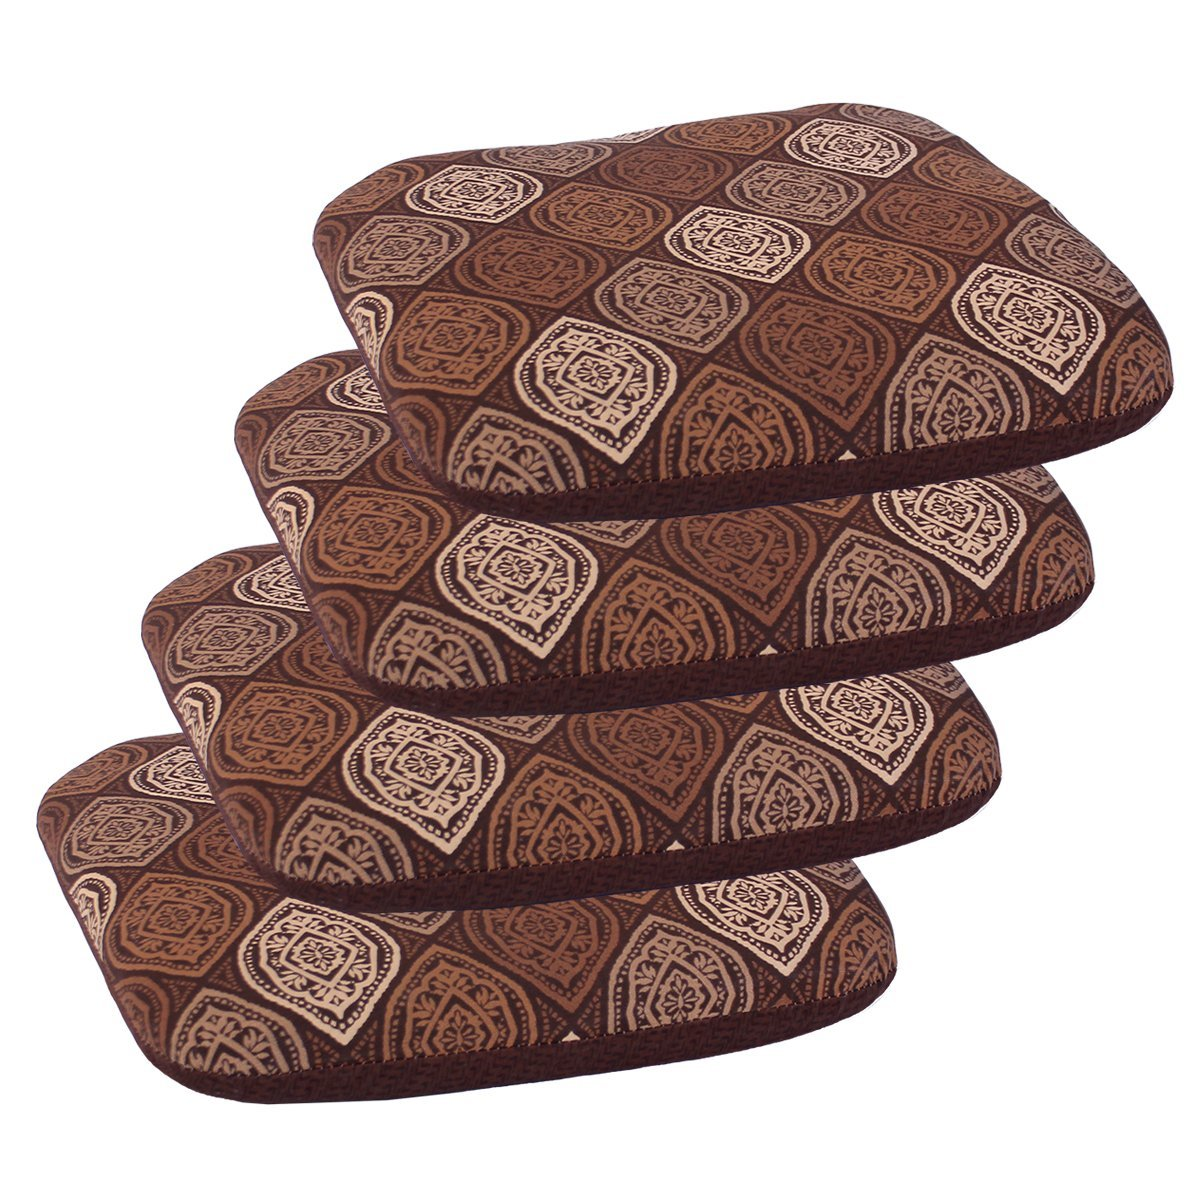 "Set of 4 Outdoor Seat Cushions 16"" x 17"" x 2"" in Polyester Fabric Davidson Brown by Comfort Classics Inc."